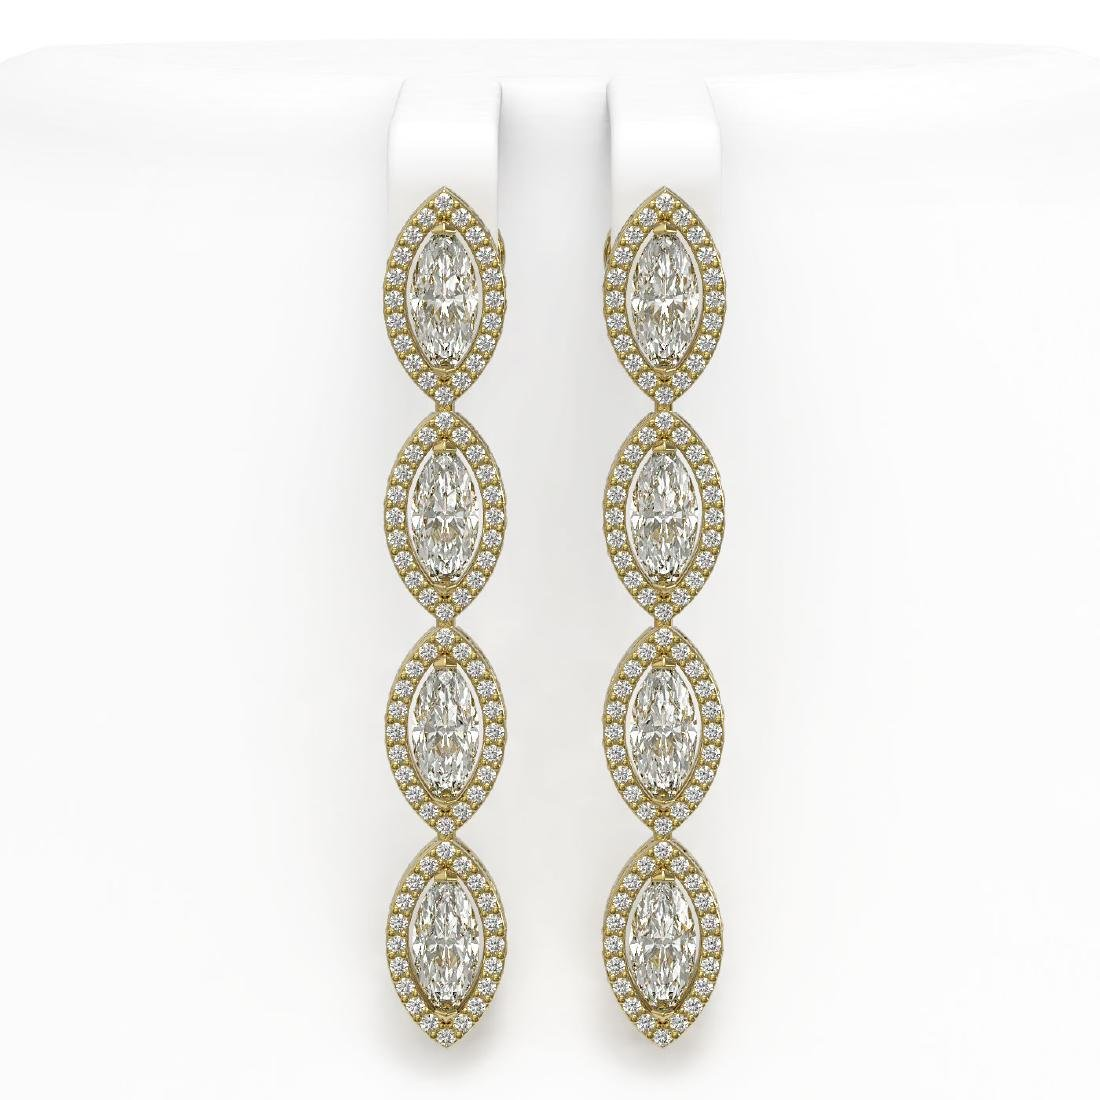 6.08 CTW Marquise Diamond Designer Earrings 18K Yellow